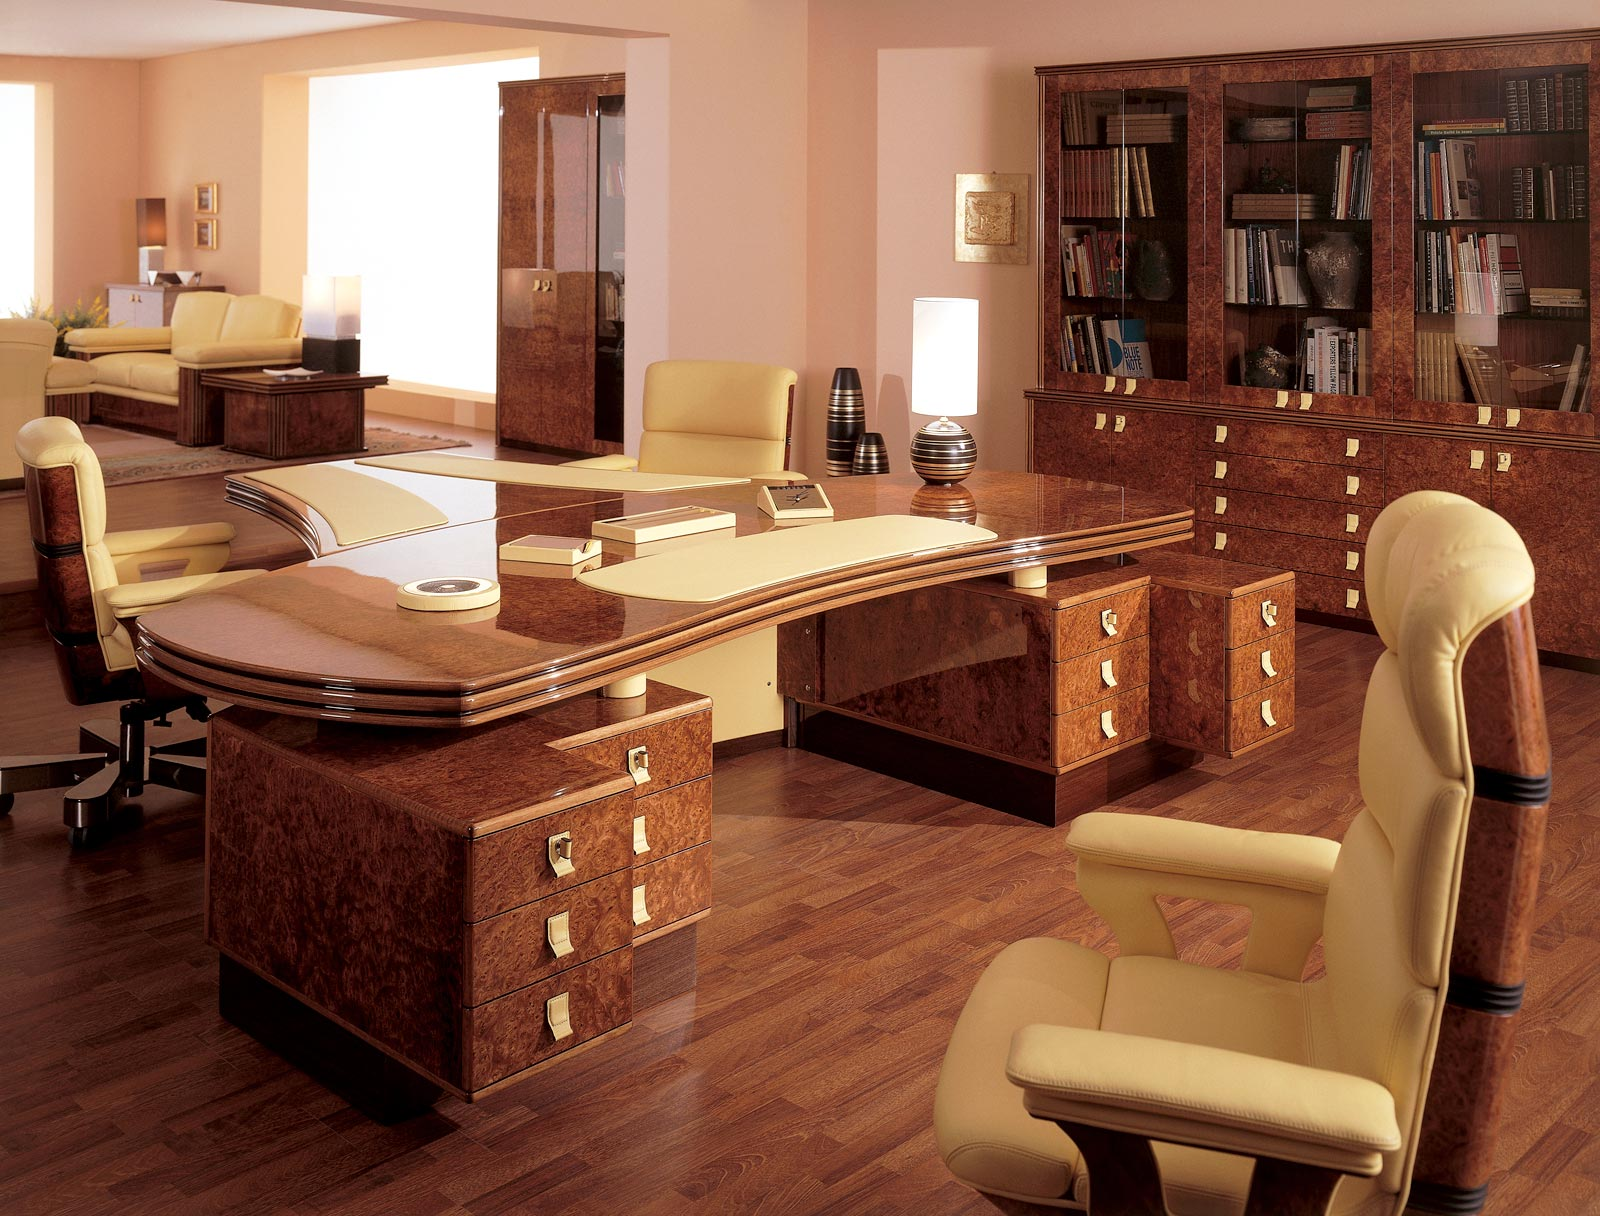 Executive and presidential luxury office r a mobili for Arredamenti di lusso moderni